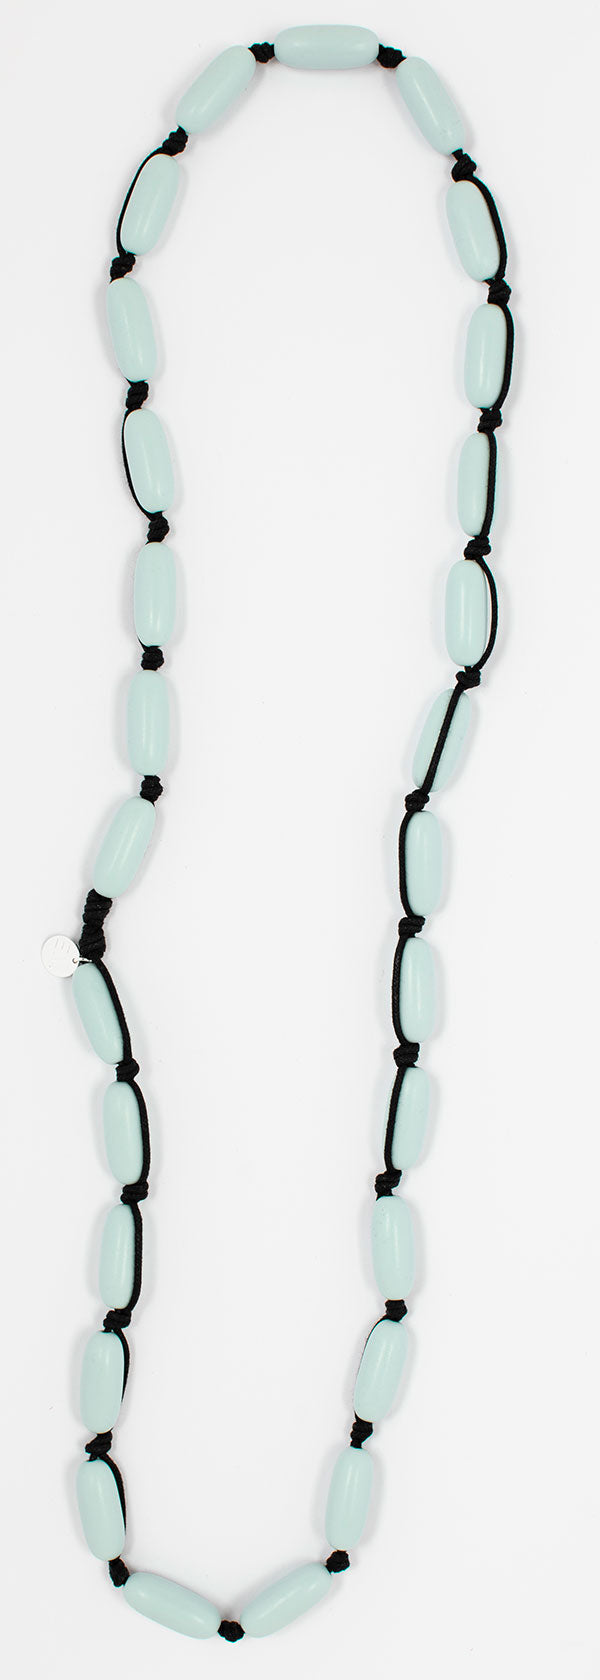 Evie Marques Midi necklace Cloud on black cord